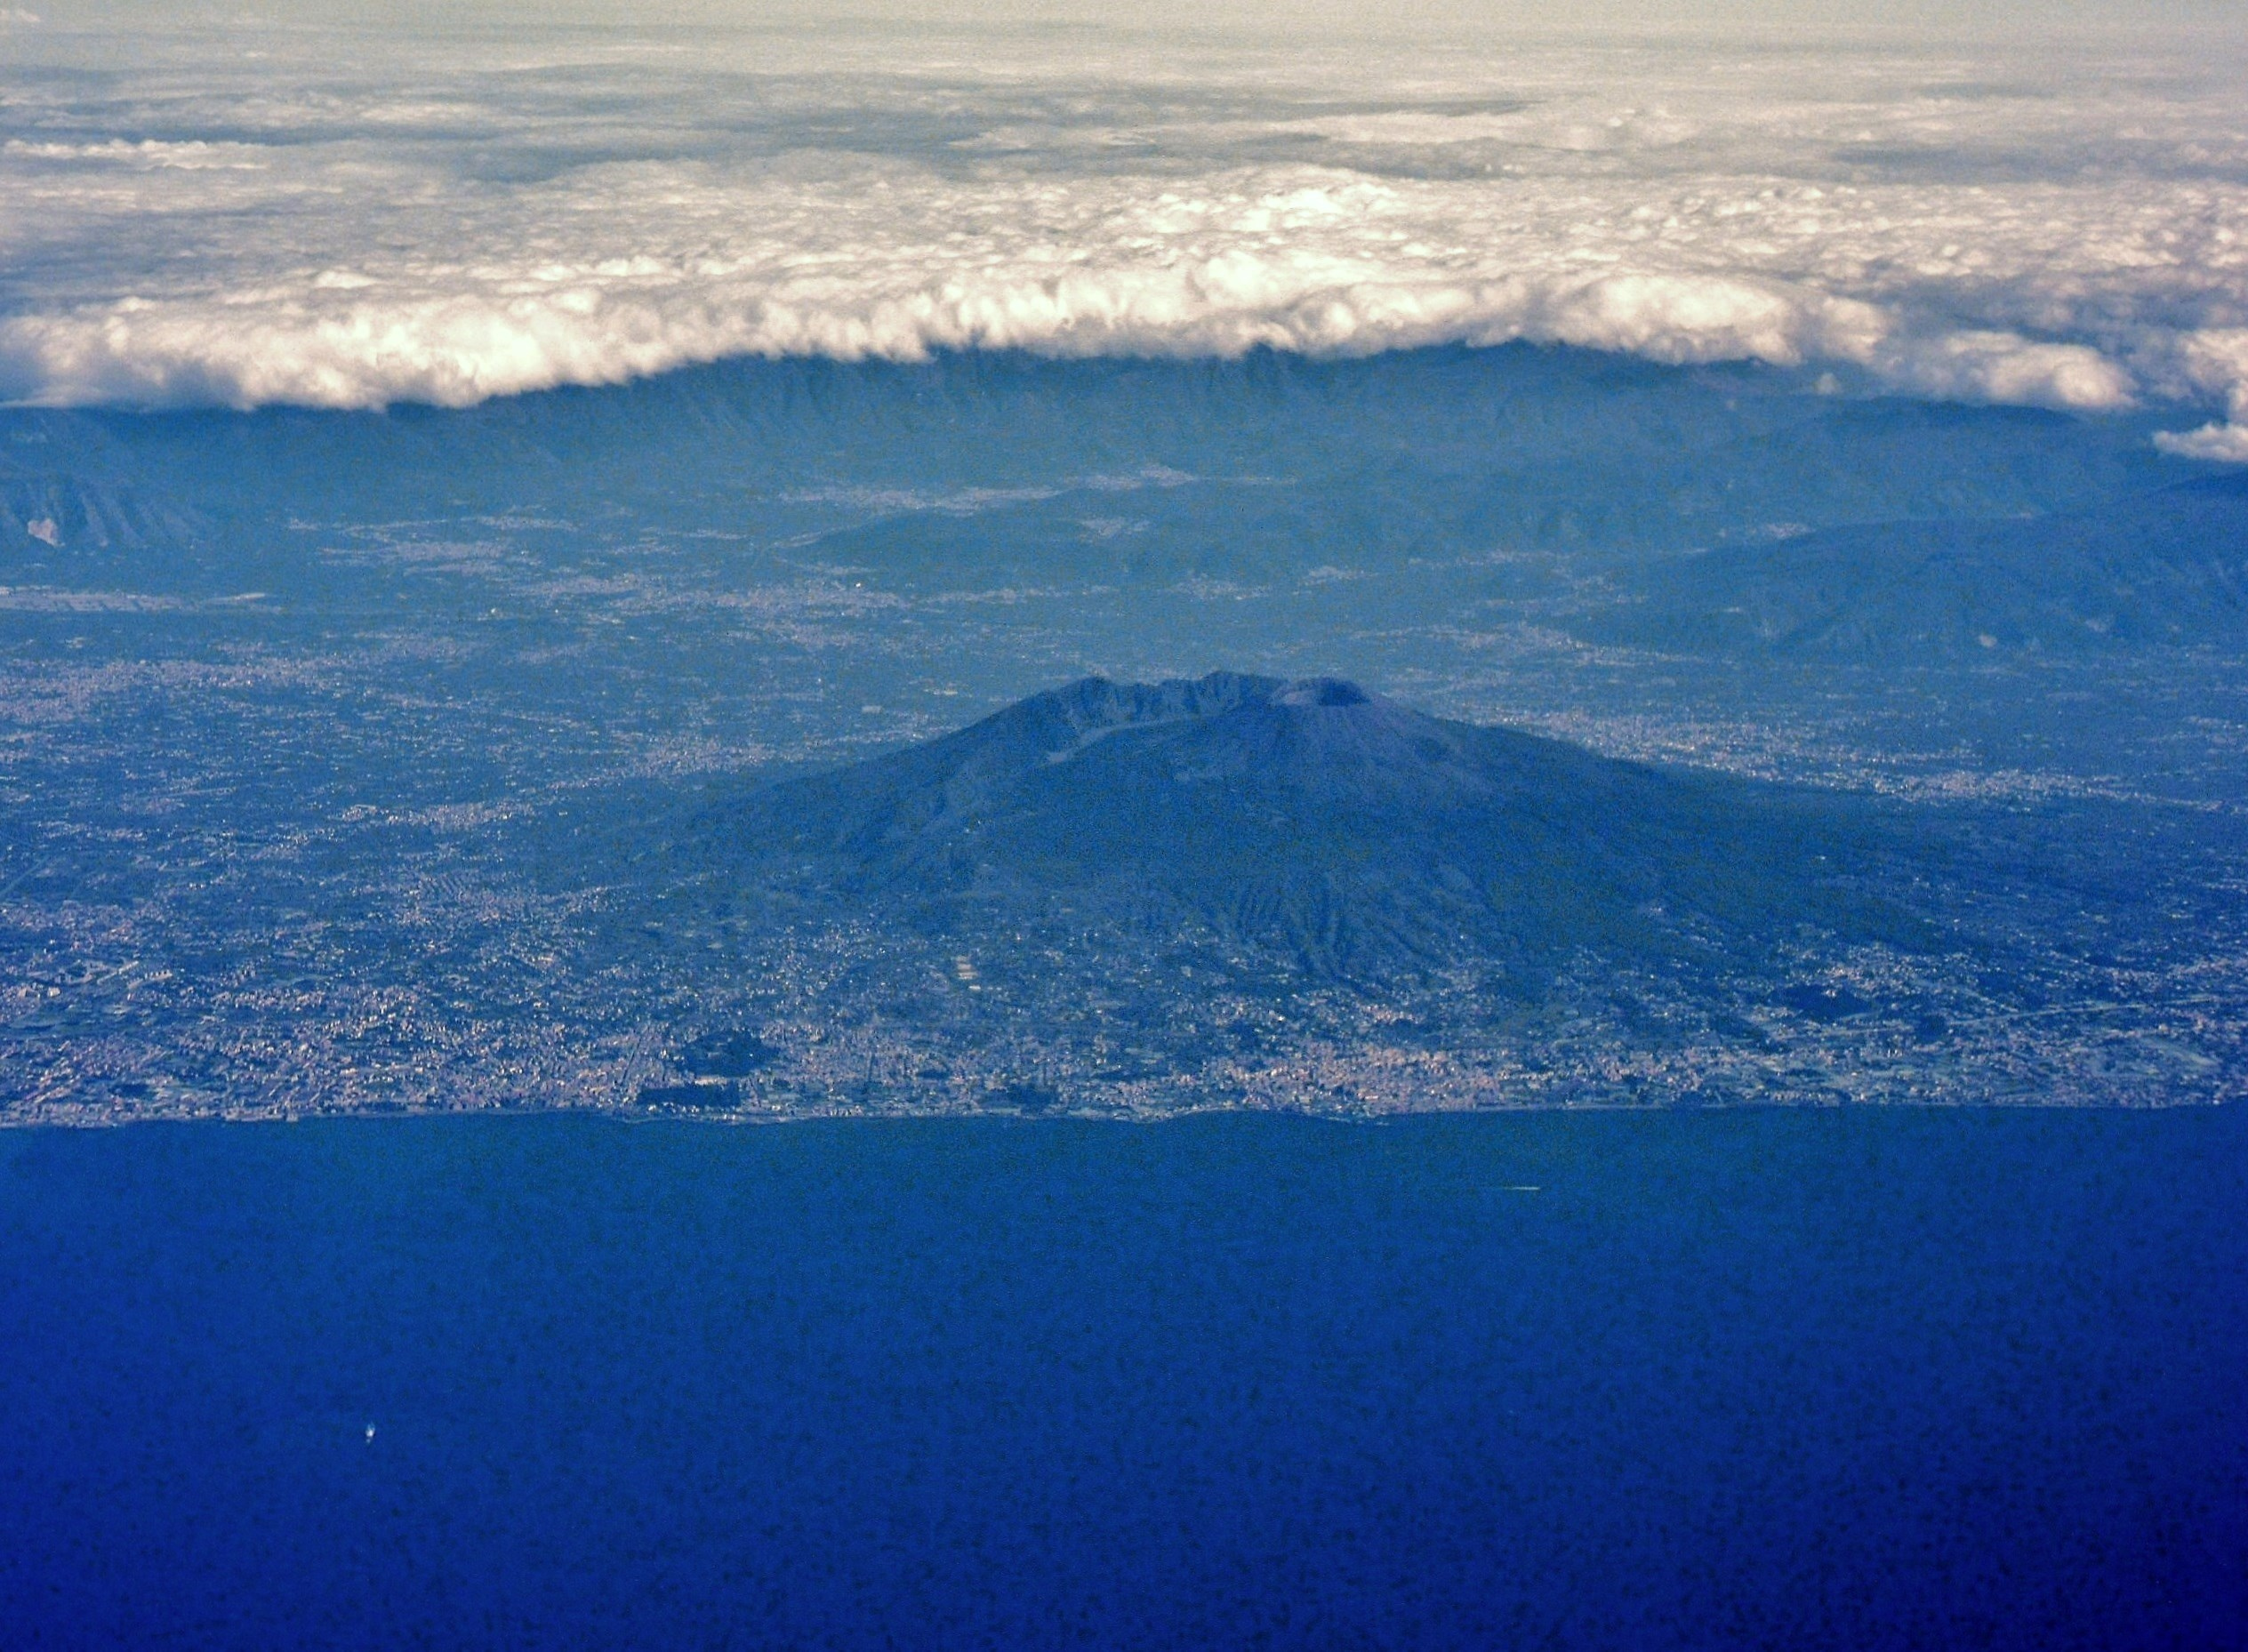 The view from the window of an airplane, took off from Capodichino International Airport, the Gulf of Naples and Vesuvius